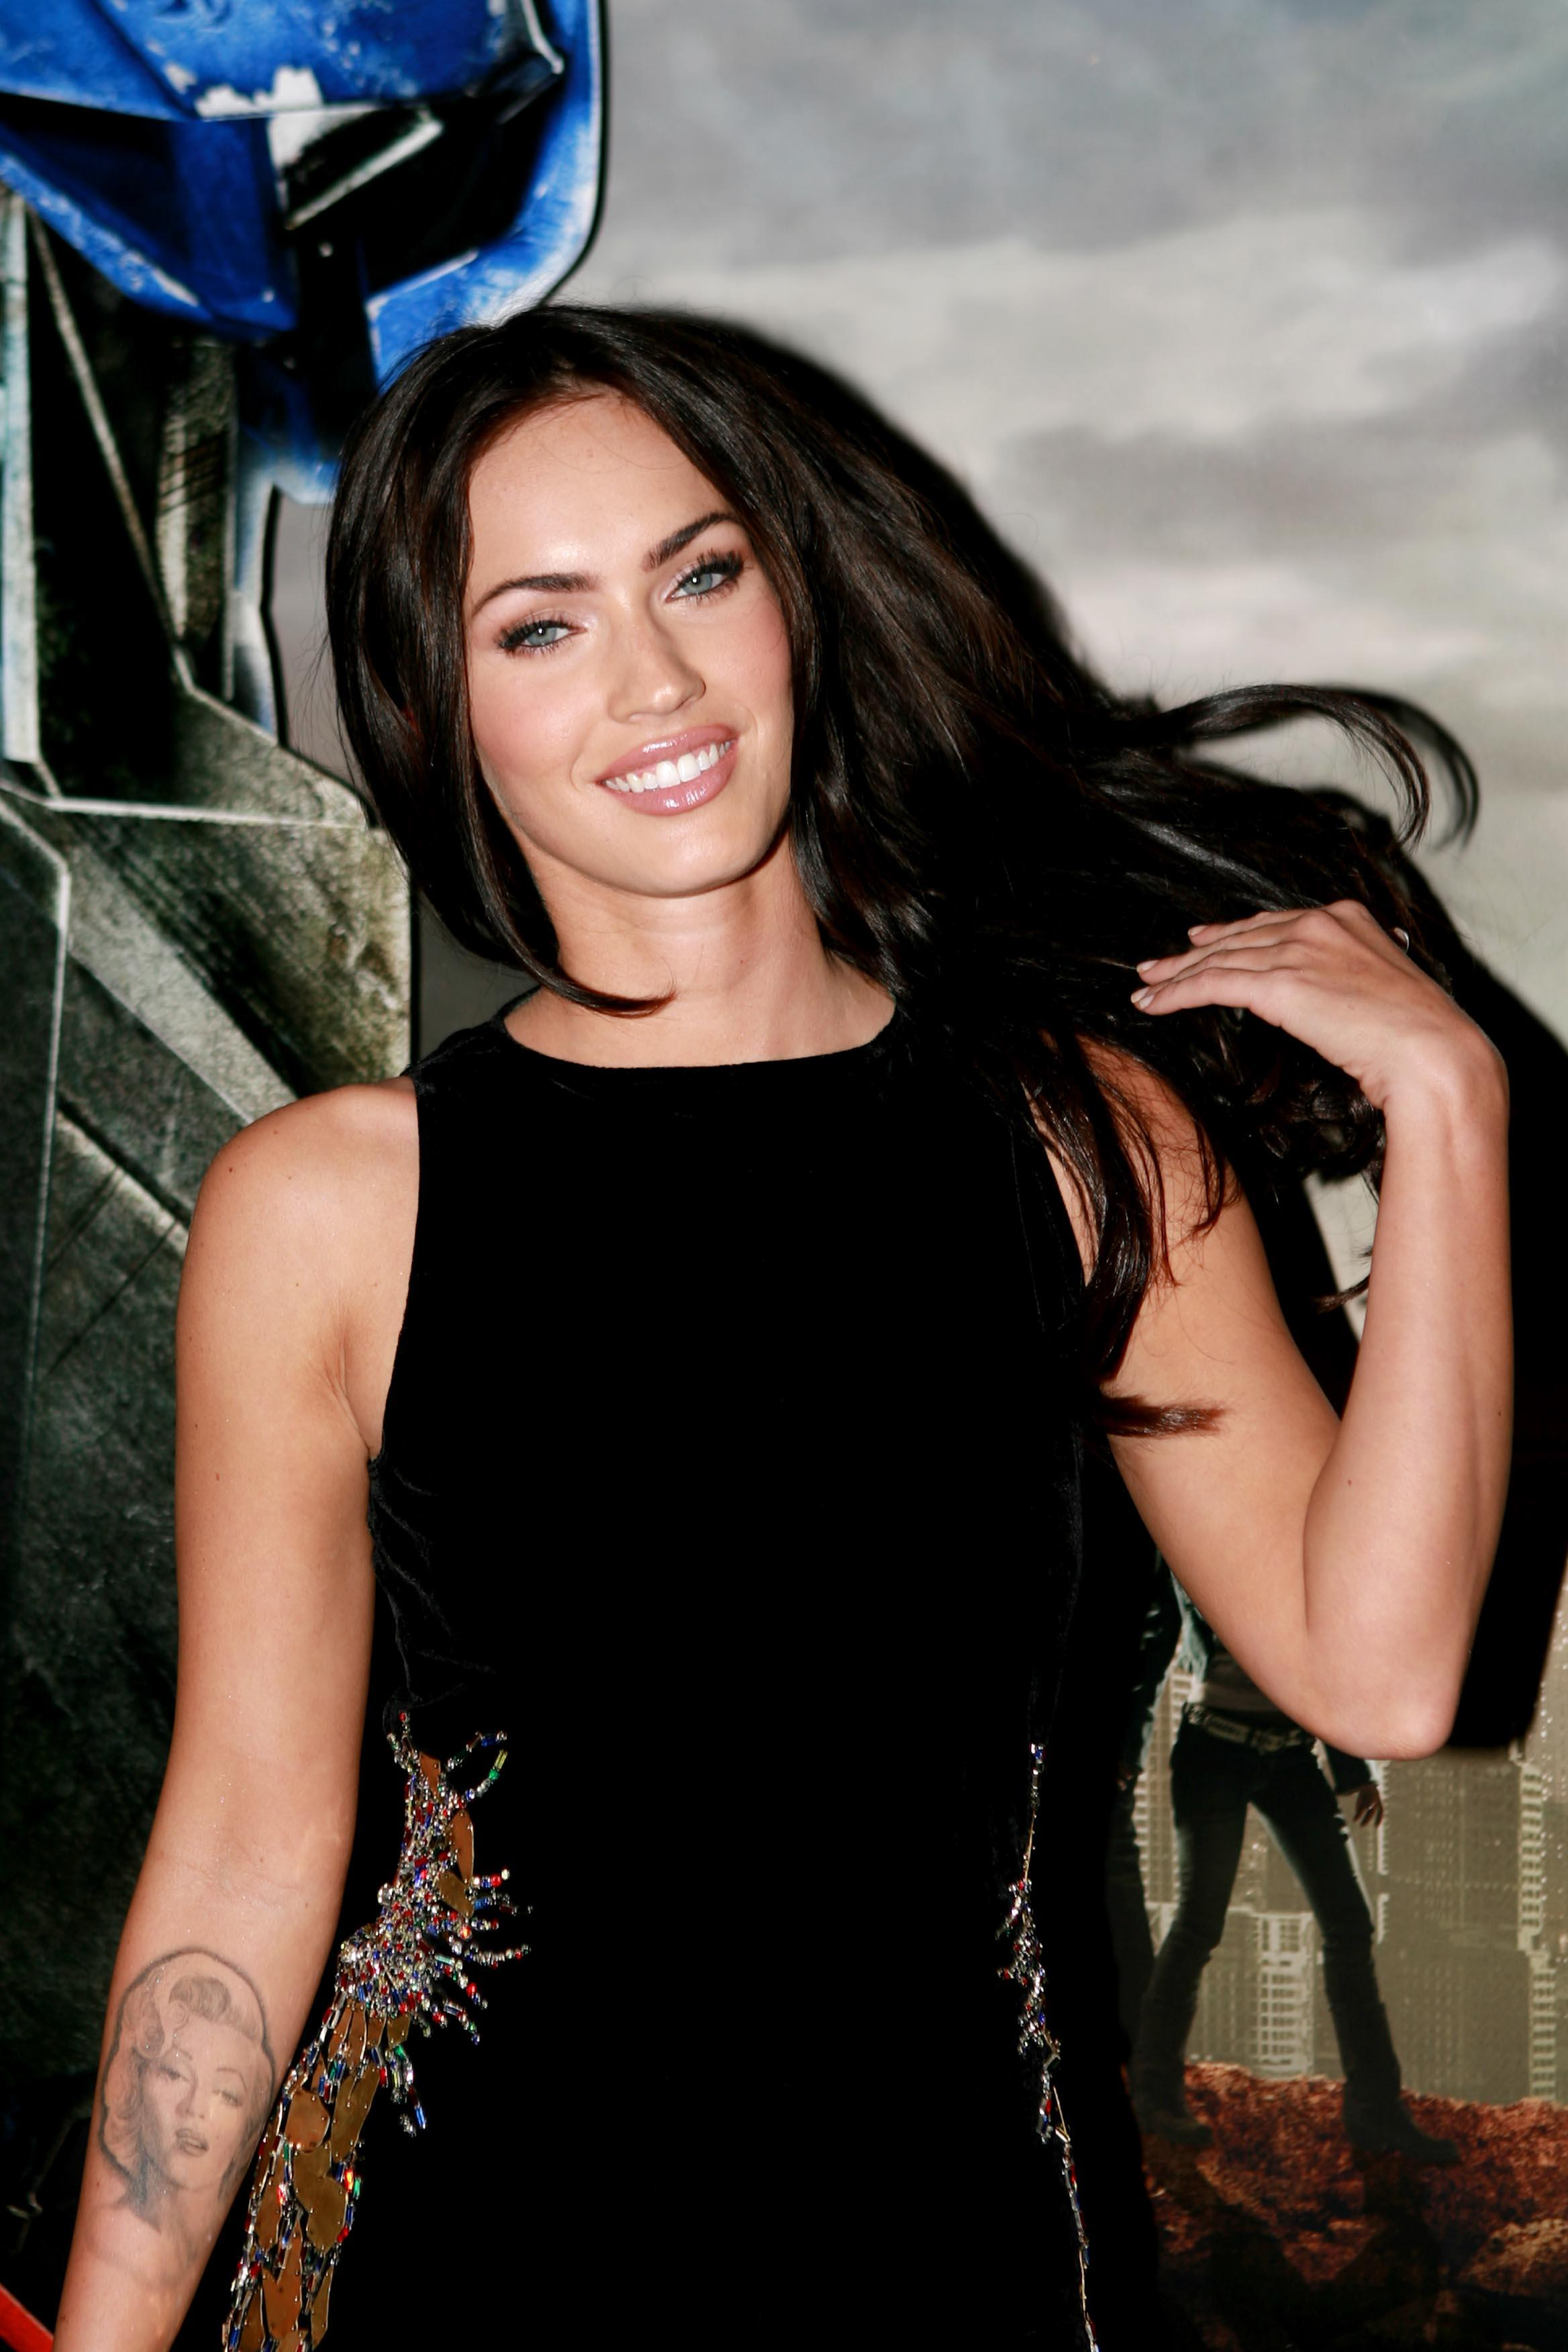 Husband Wife Funny Quotes Wallpaper Top 10 Hot Collection Of Megan Fox In Black